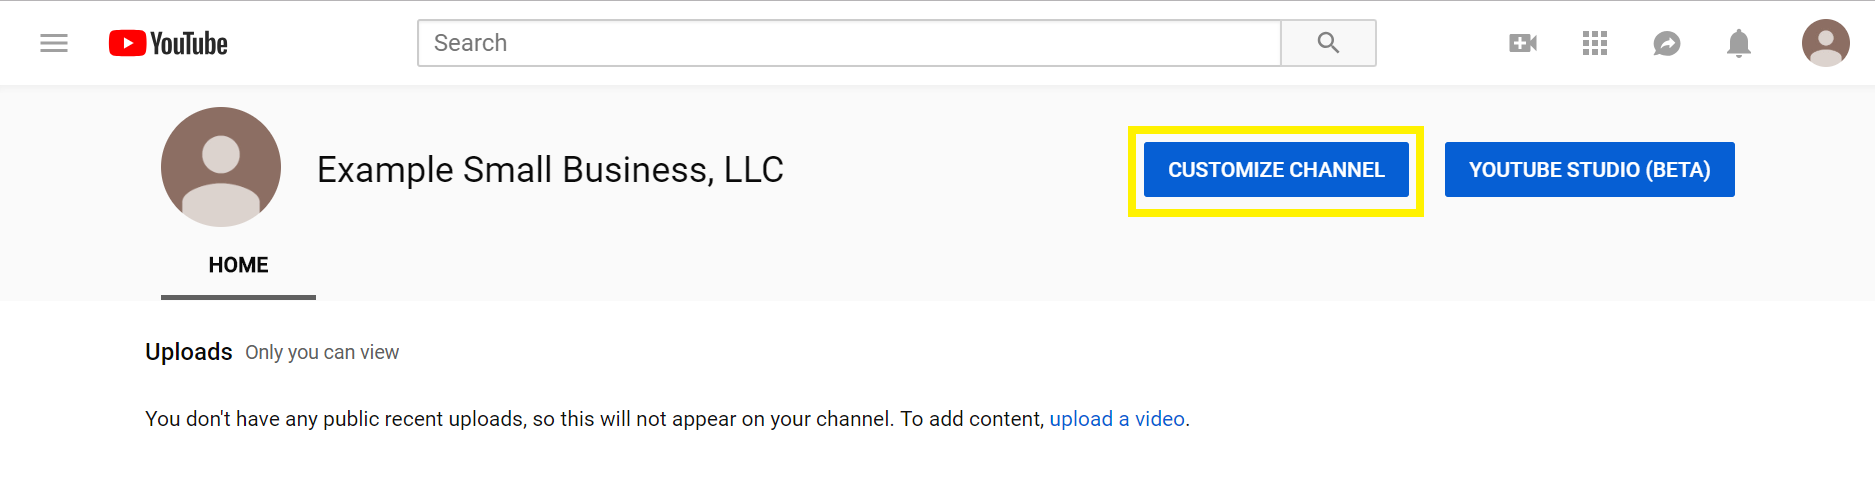 click customize channel